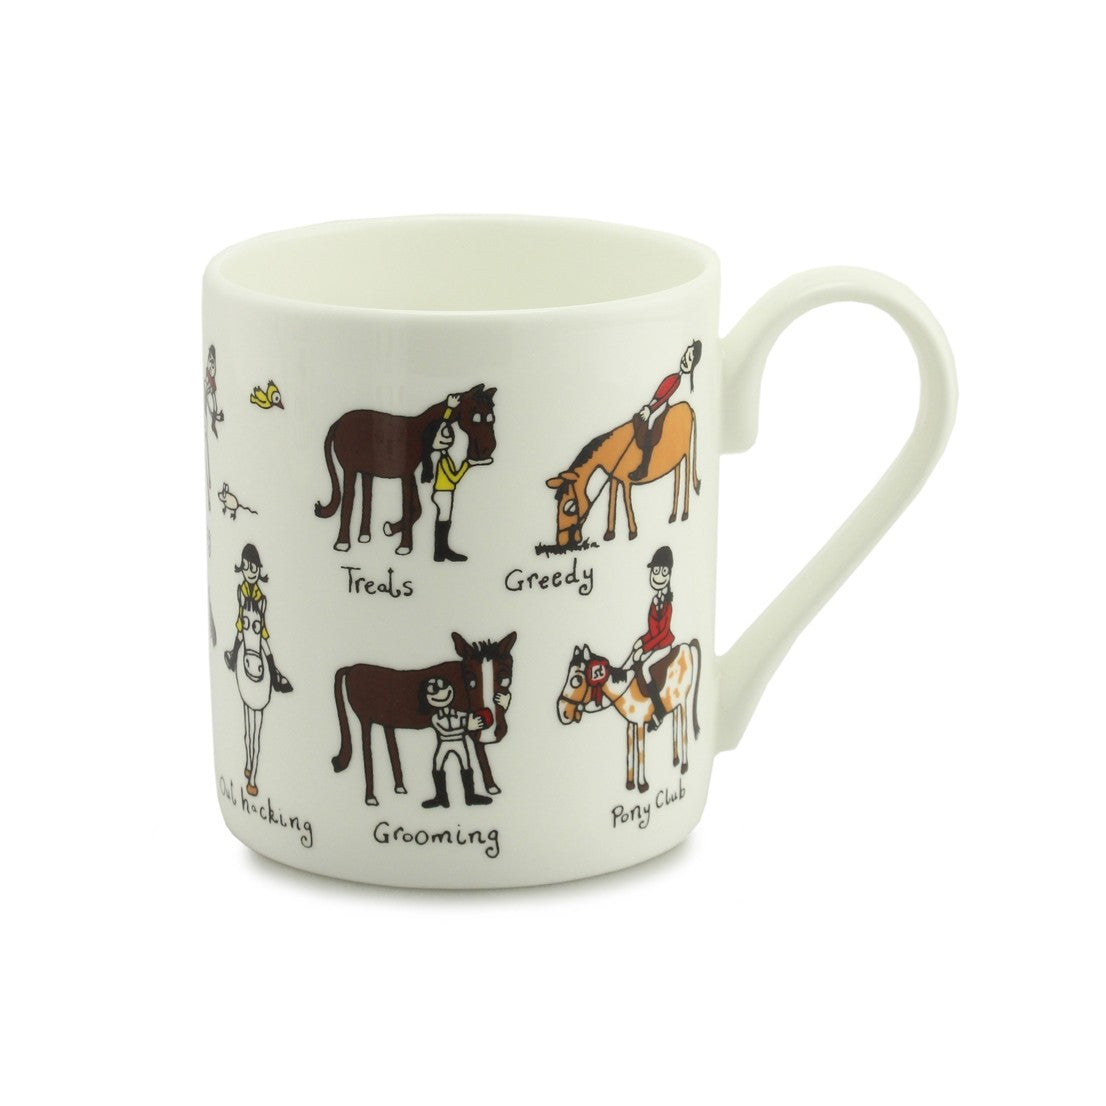 Pony Club China Mug